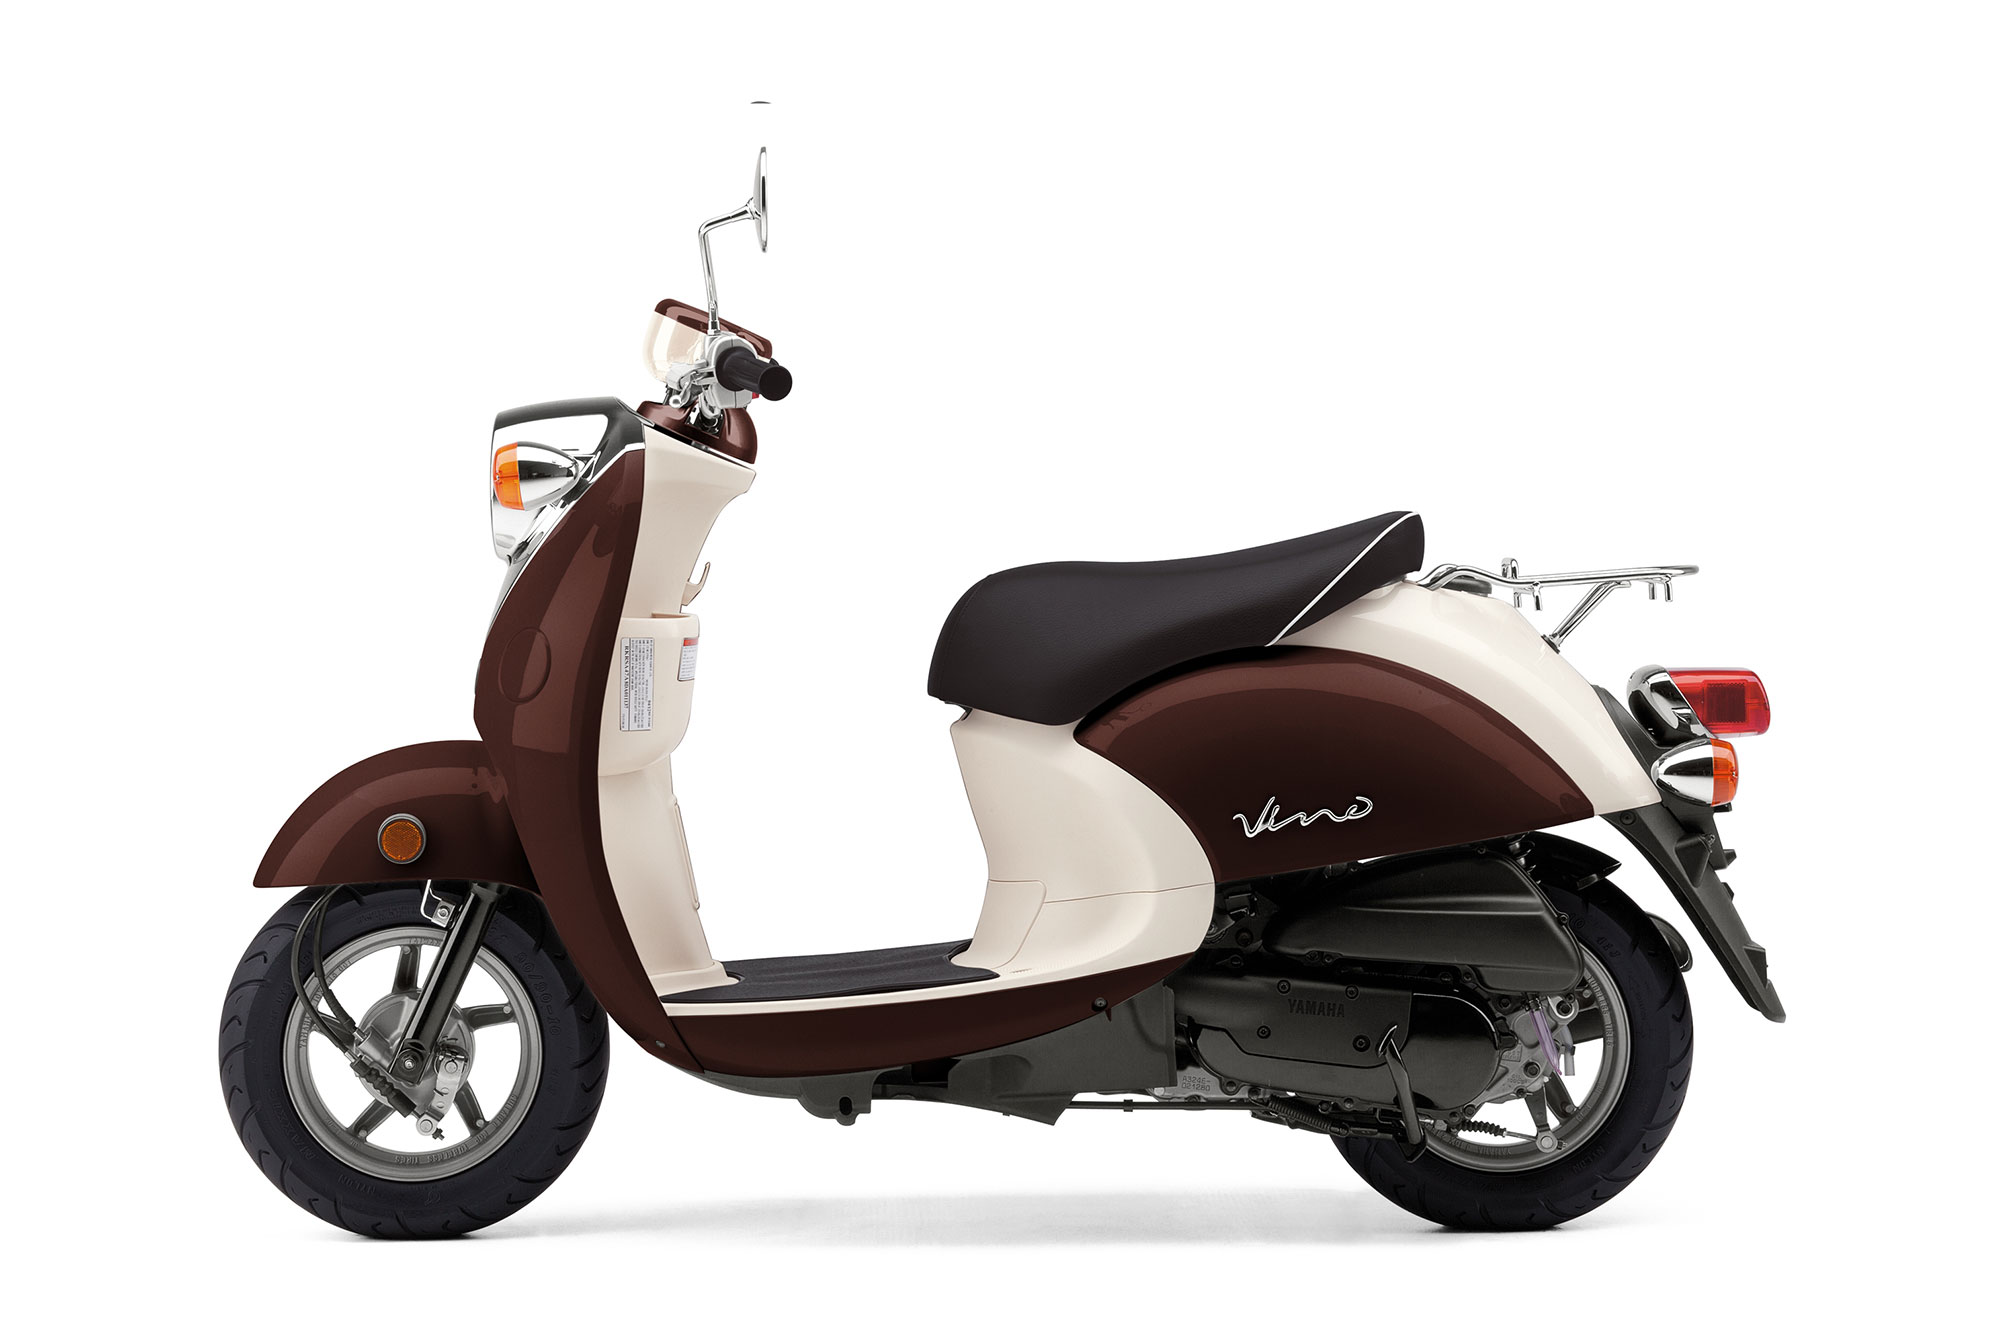 Yamaha Vino Moped Review